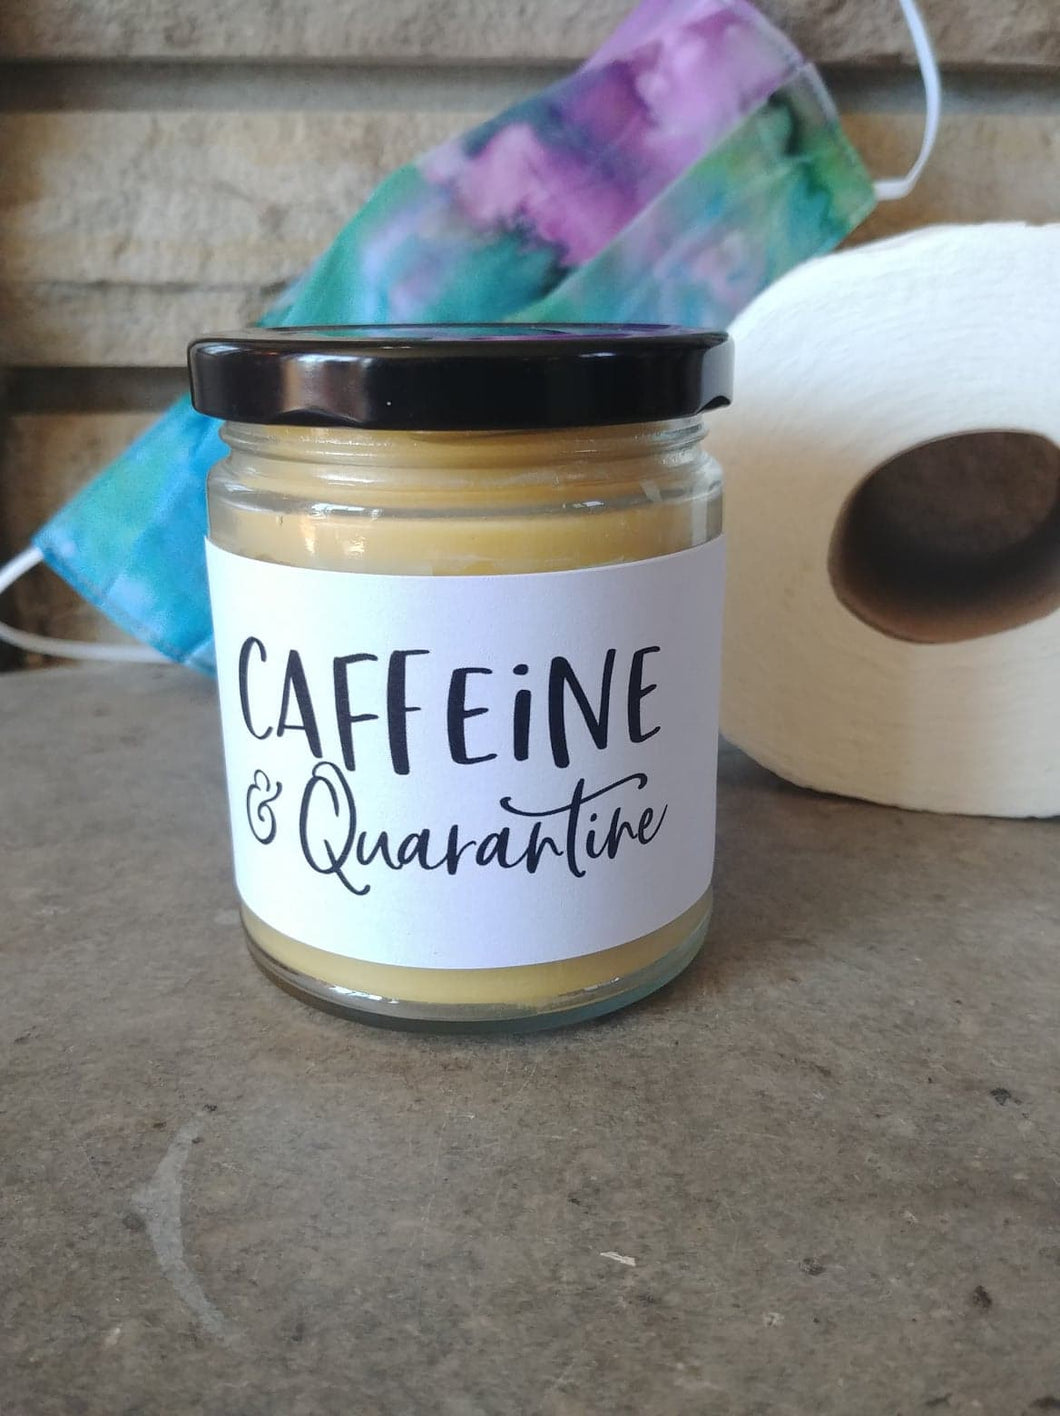 CAFFEINE & QUARANTINE - Handmade Gifts that are funny AF - Small Batched and Locally Made Beeswax Candles - Essential Worker, Coworker, Nurse, Friend, Neighbor, Care Gift | Countryside Treasures